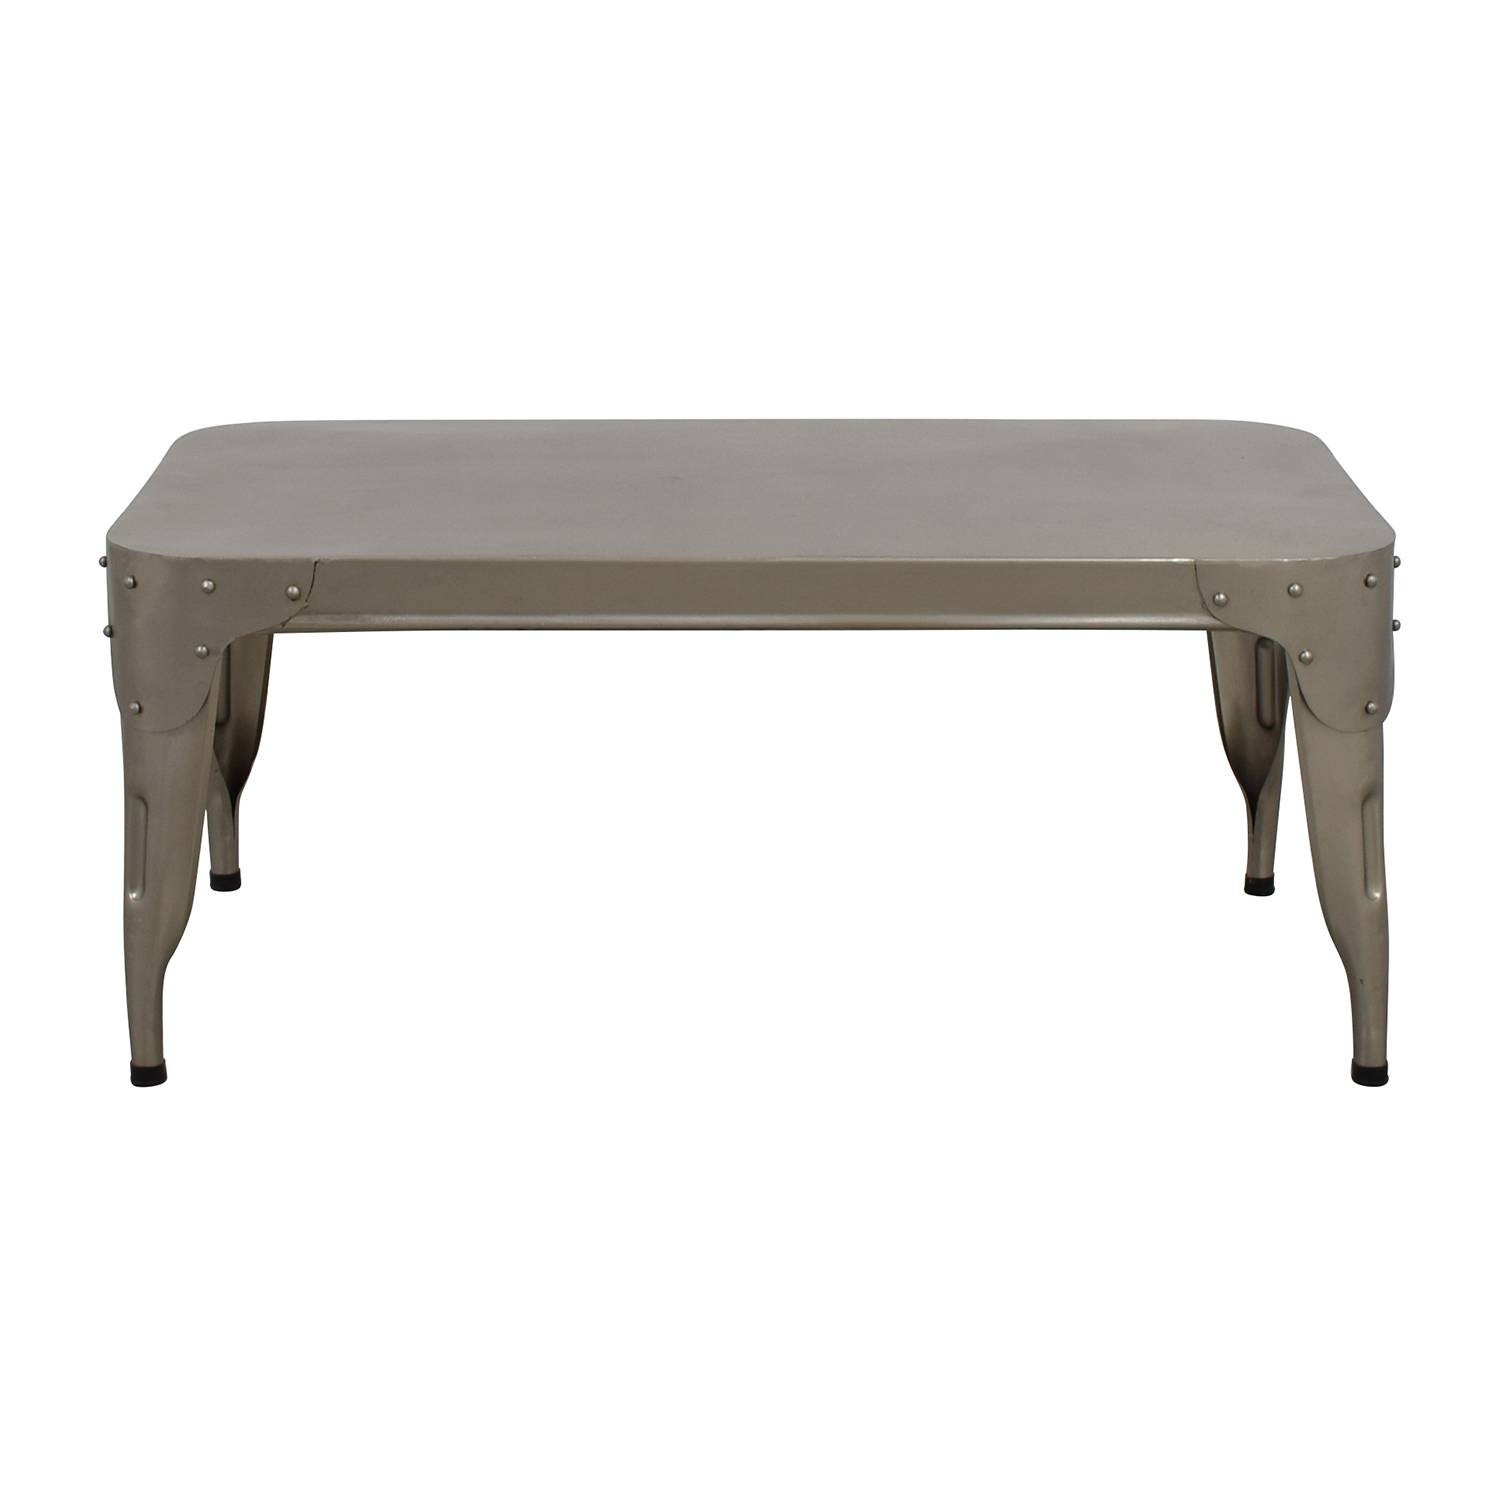 68% Off - Joss & Main Joss & Main Holyoke Bunching Coffee Table in Joss And Main Coffee Tables (Image 6 of 30)